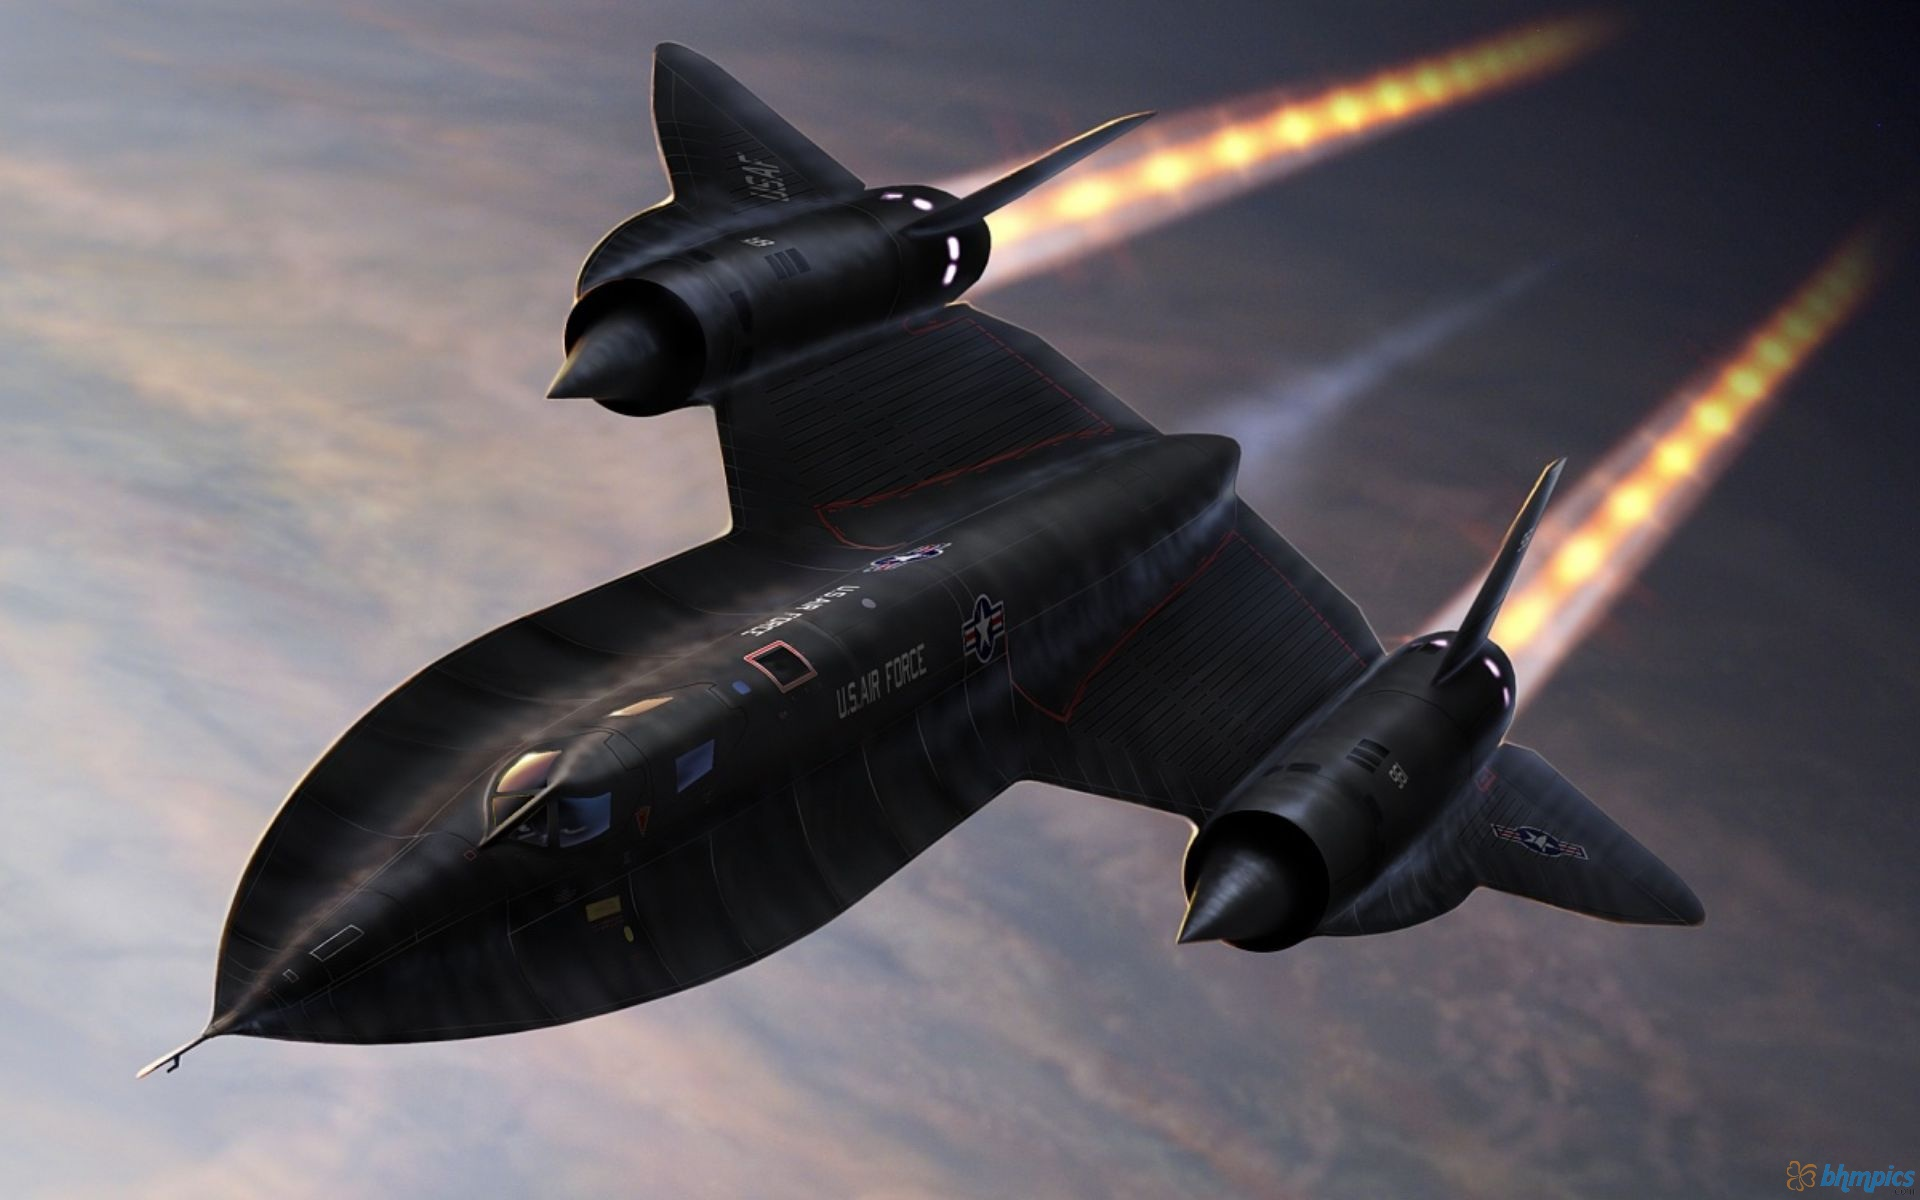 Fastest Aircrafts - Lockheed SR-71 Blackbird